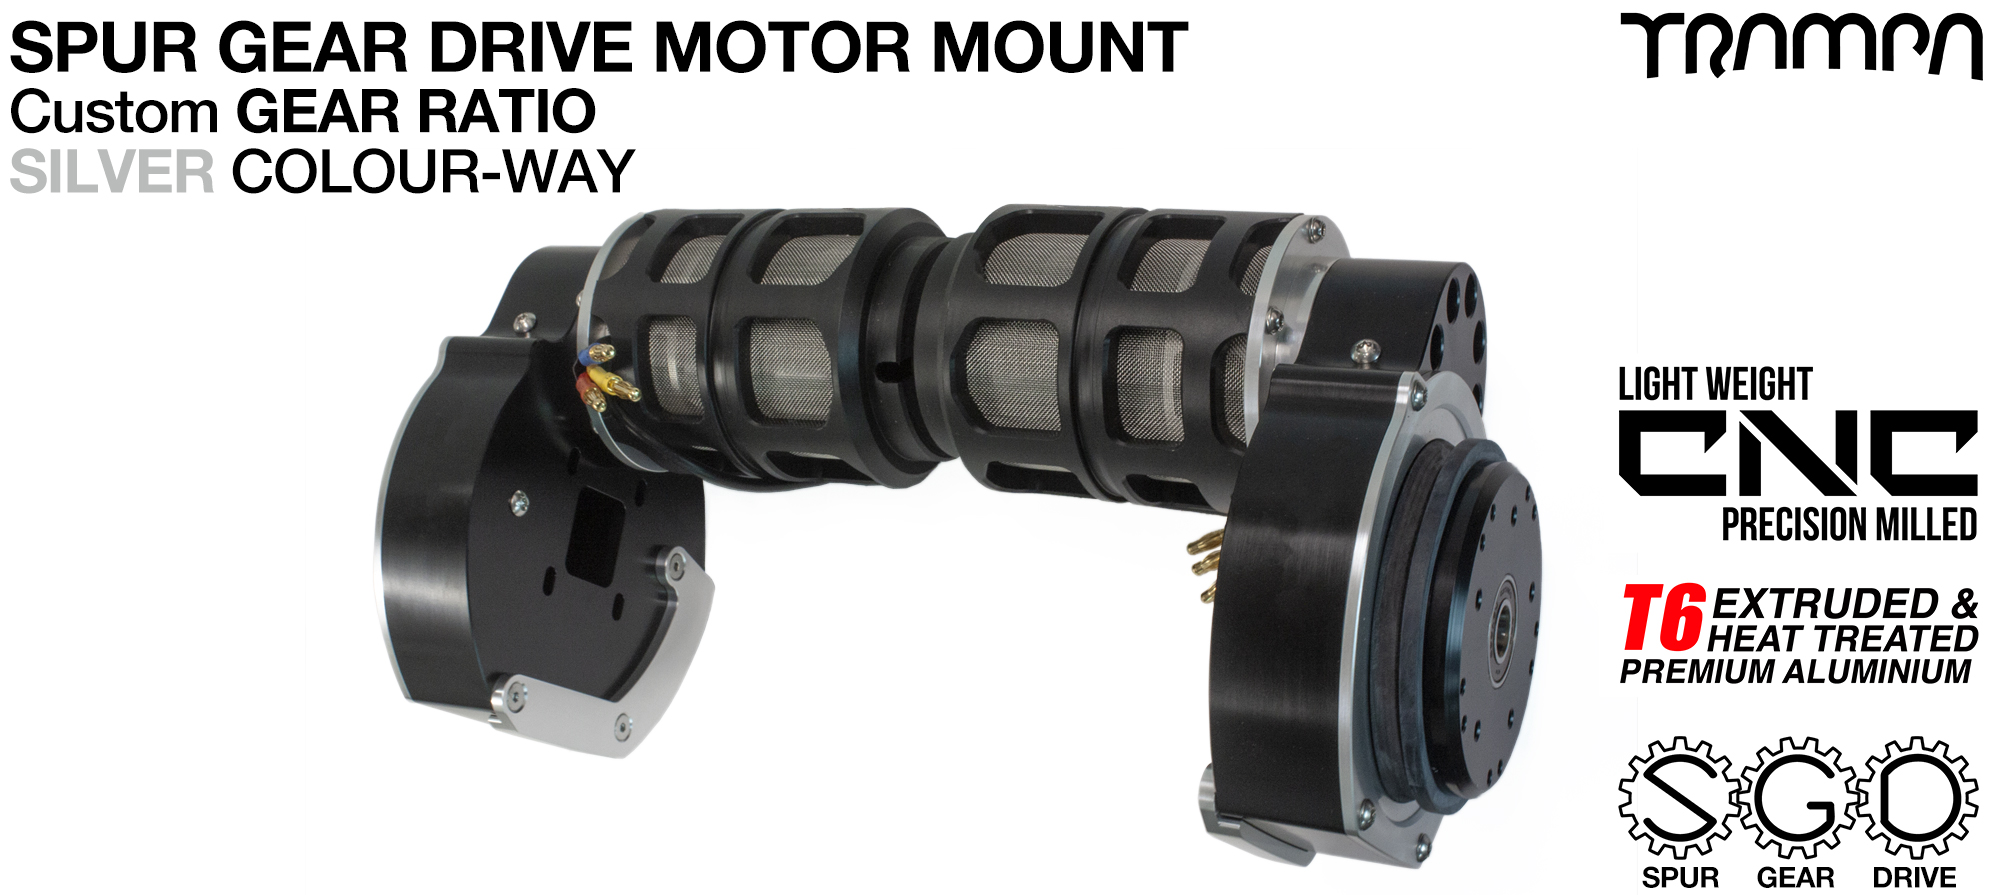 Mountainboard EXTERNAL Spur Gear Drive TWIN Motor Mounts